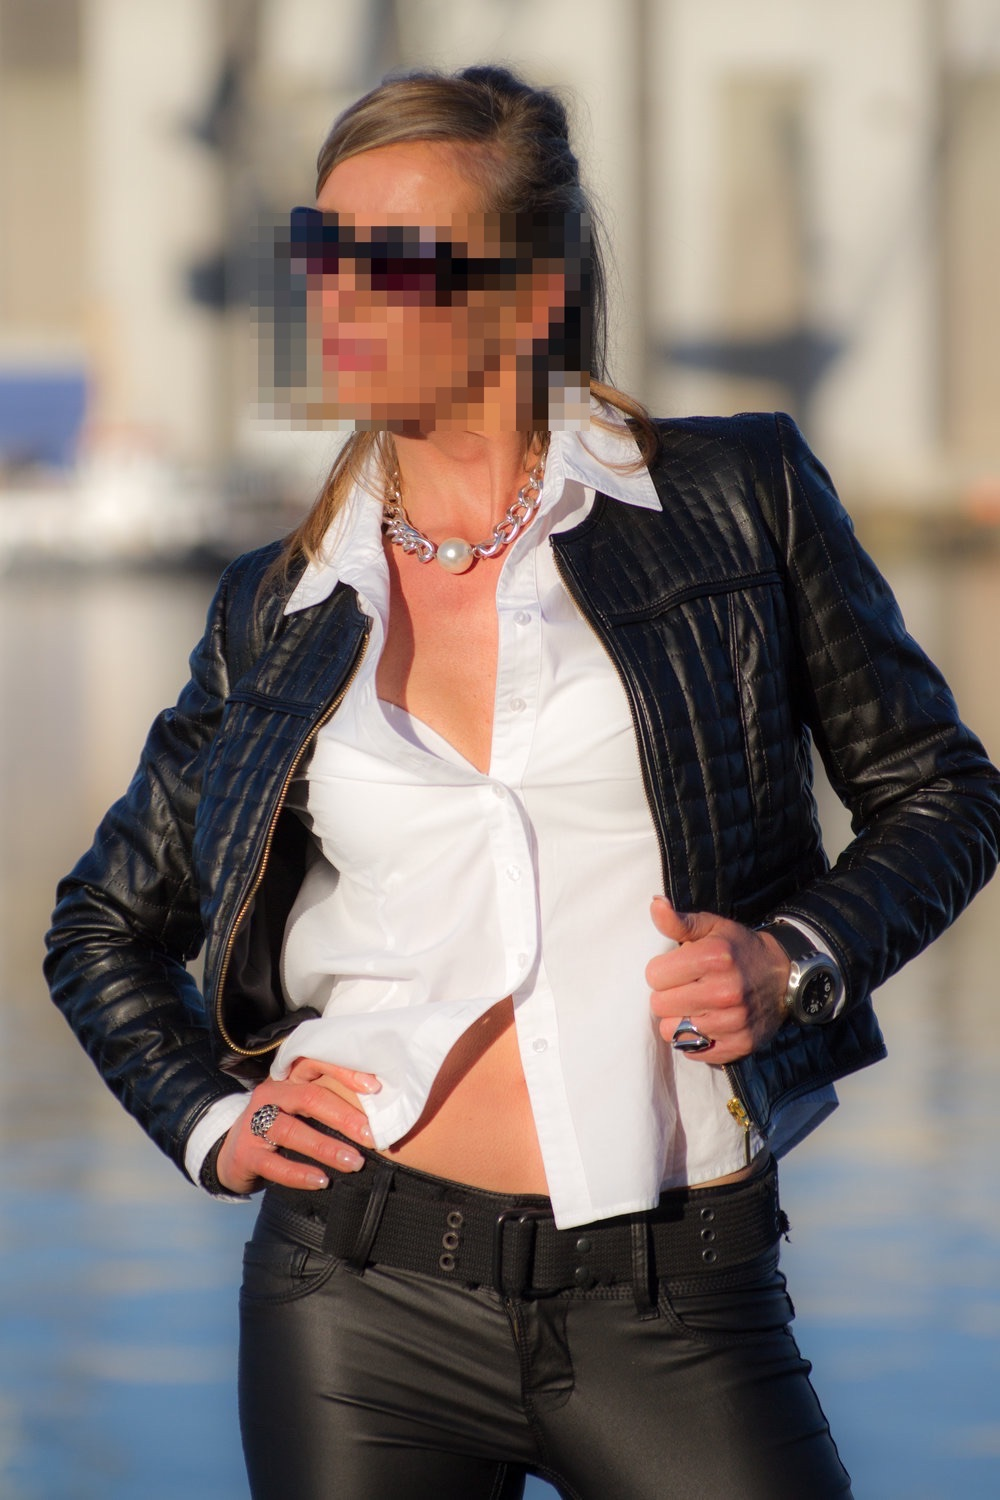 escort-flensburg-lady-madeleine-perfect-date-escort-002-2.jpg